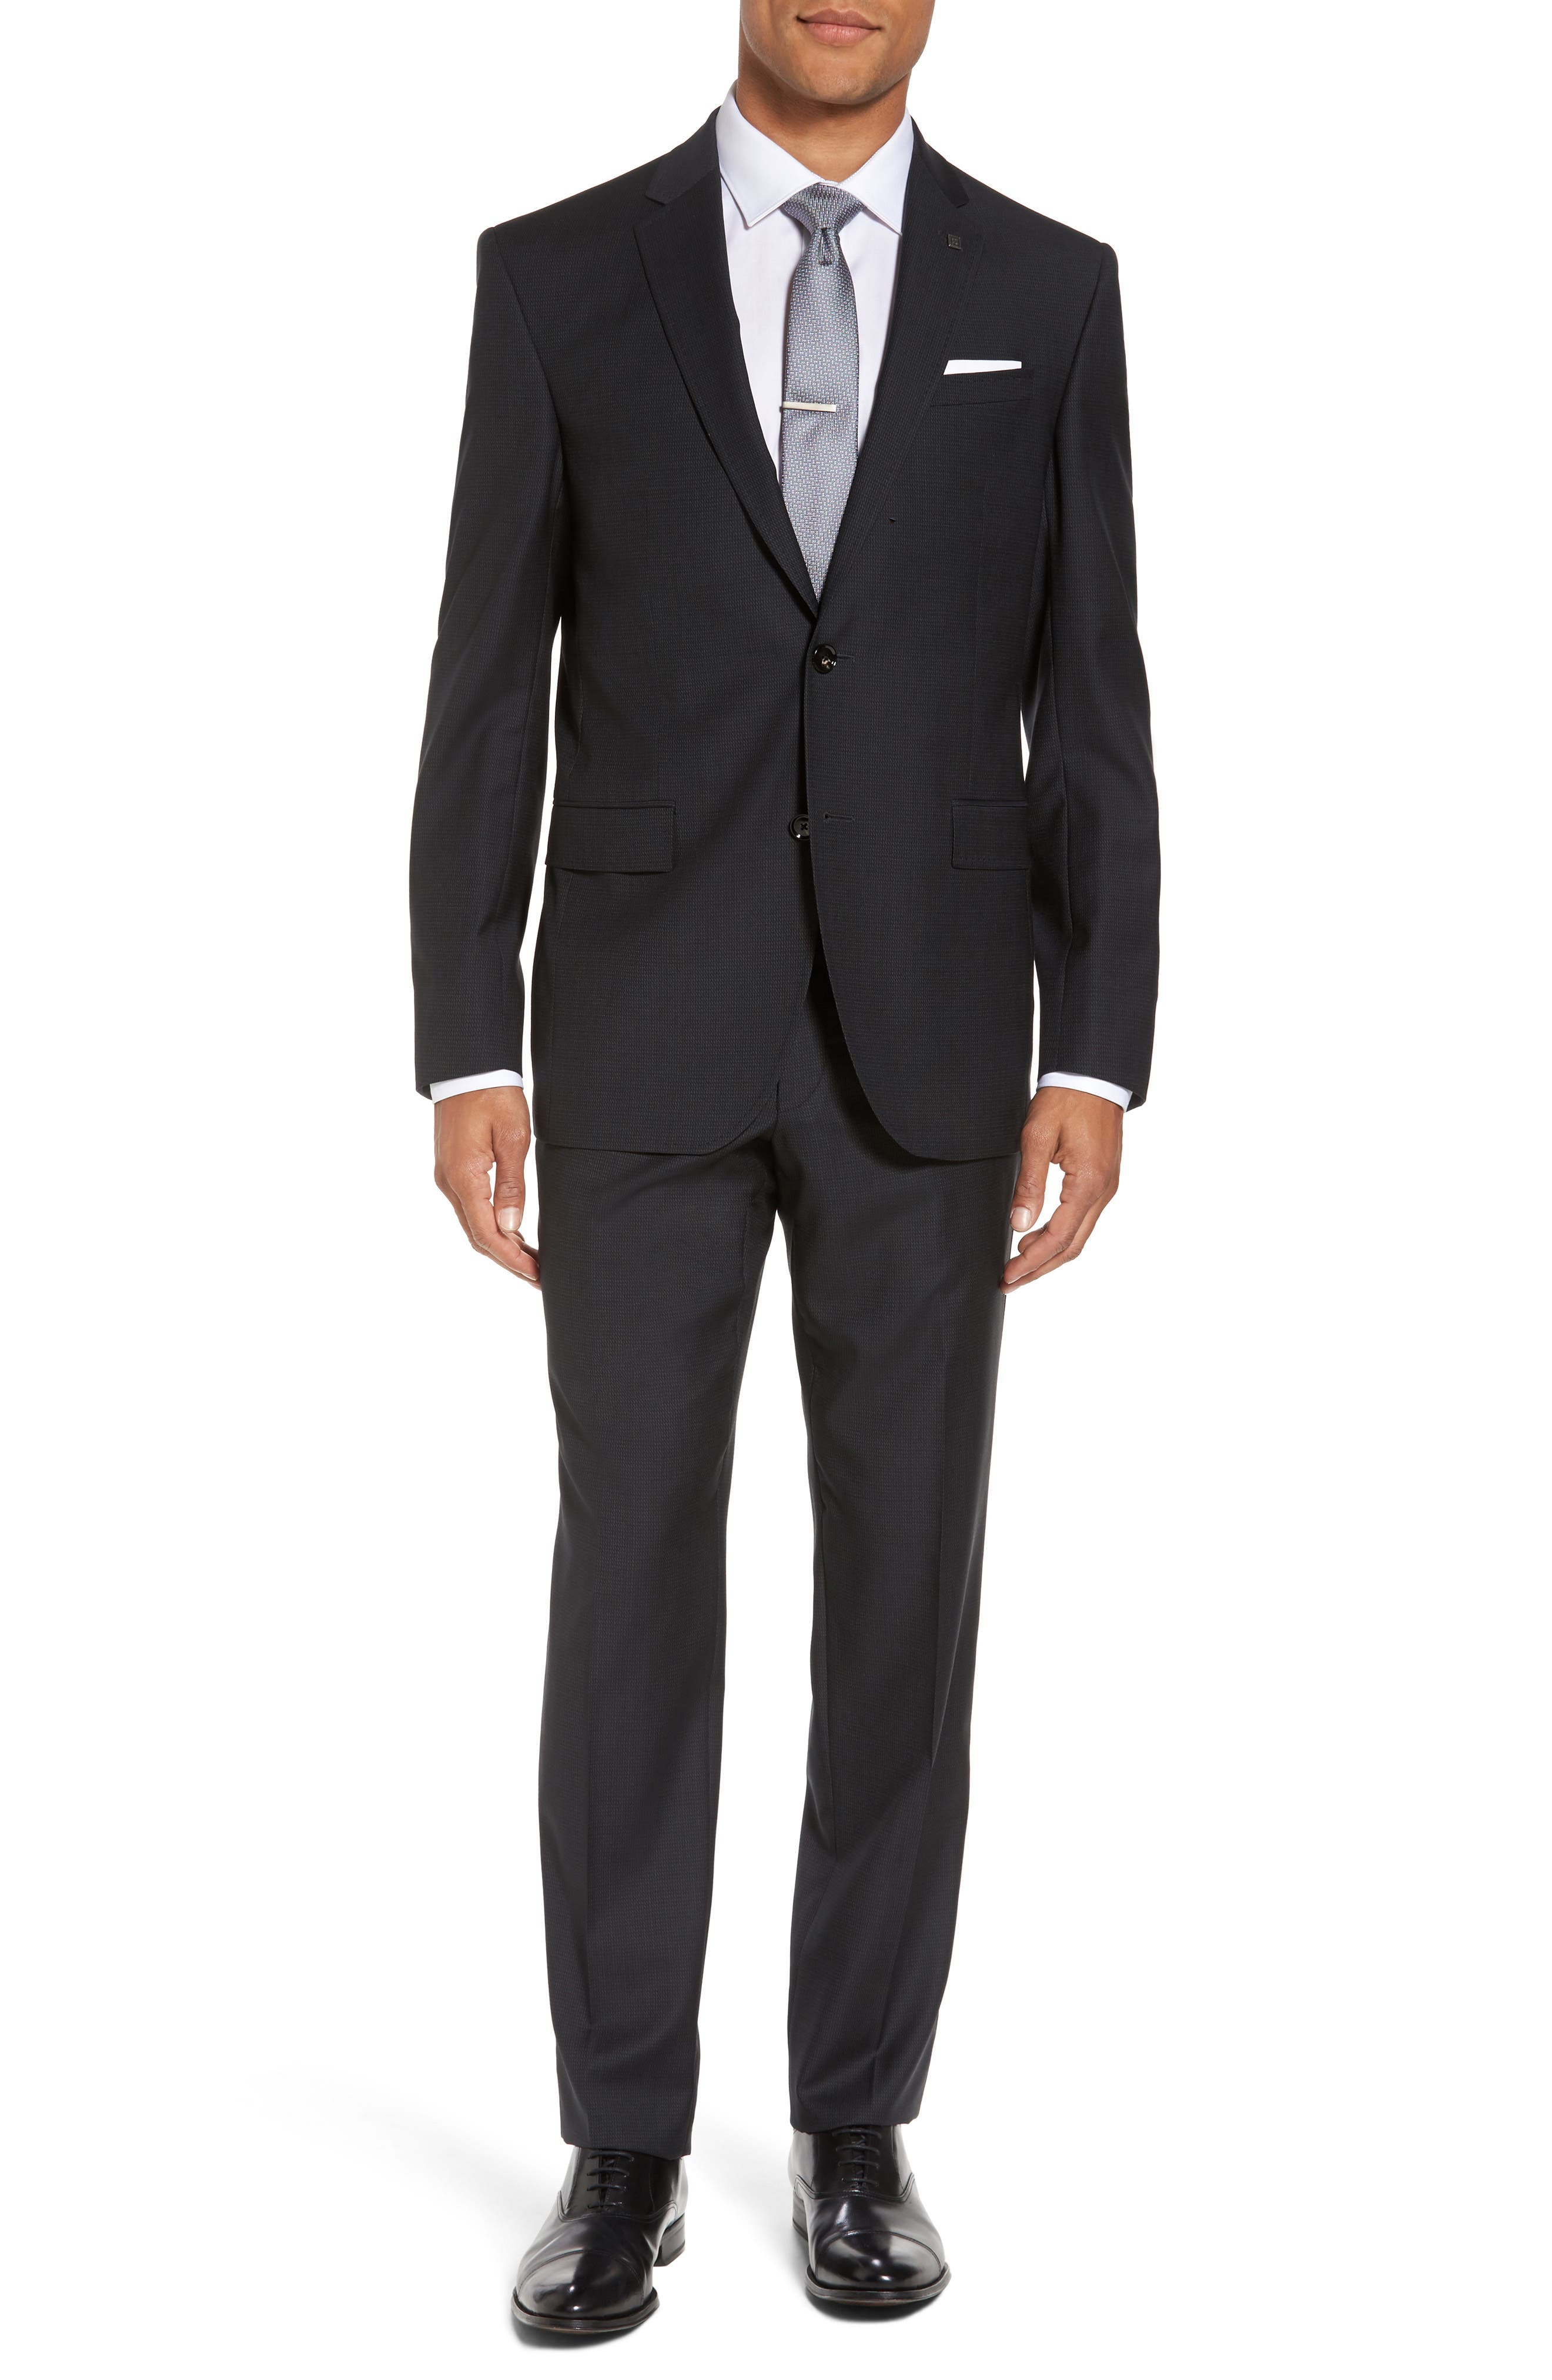 Jay Trim Fit Solid Wool Suit,                             Main thumbnail 1, color,                             Black Charcoal